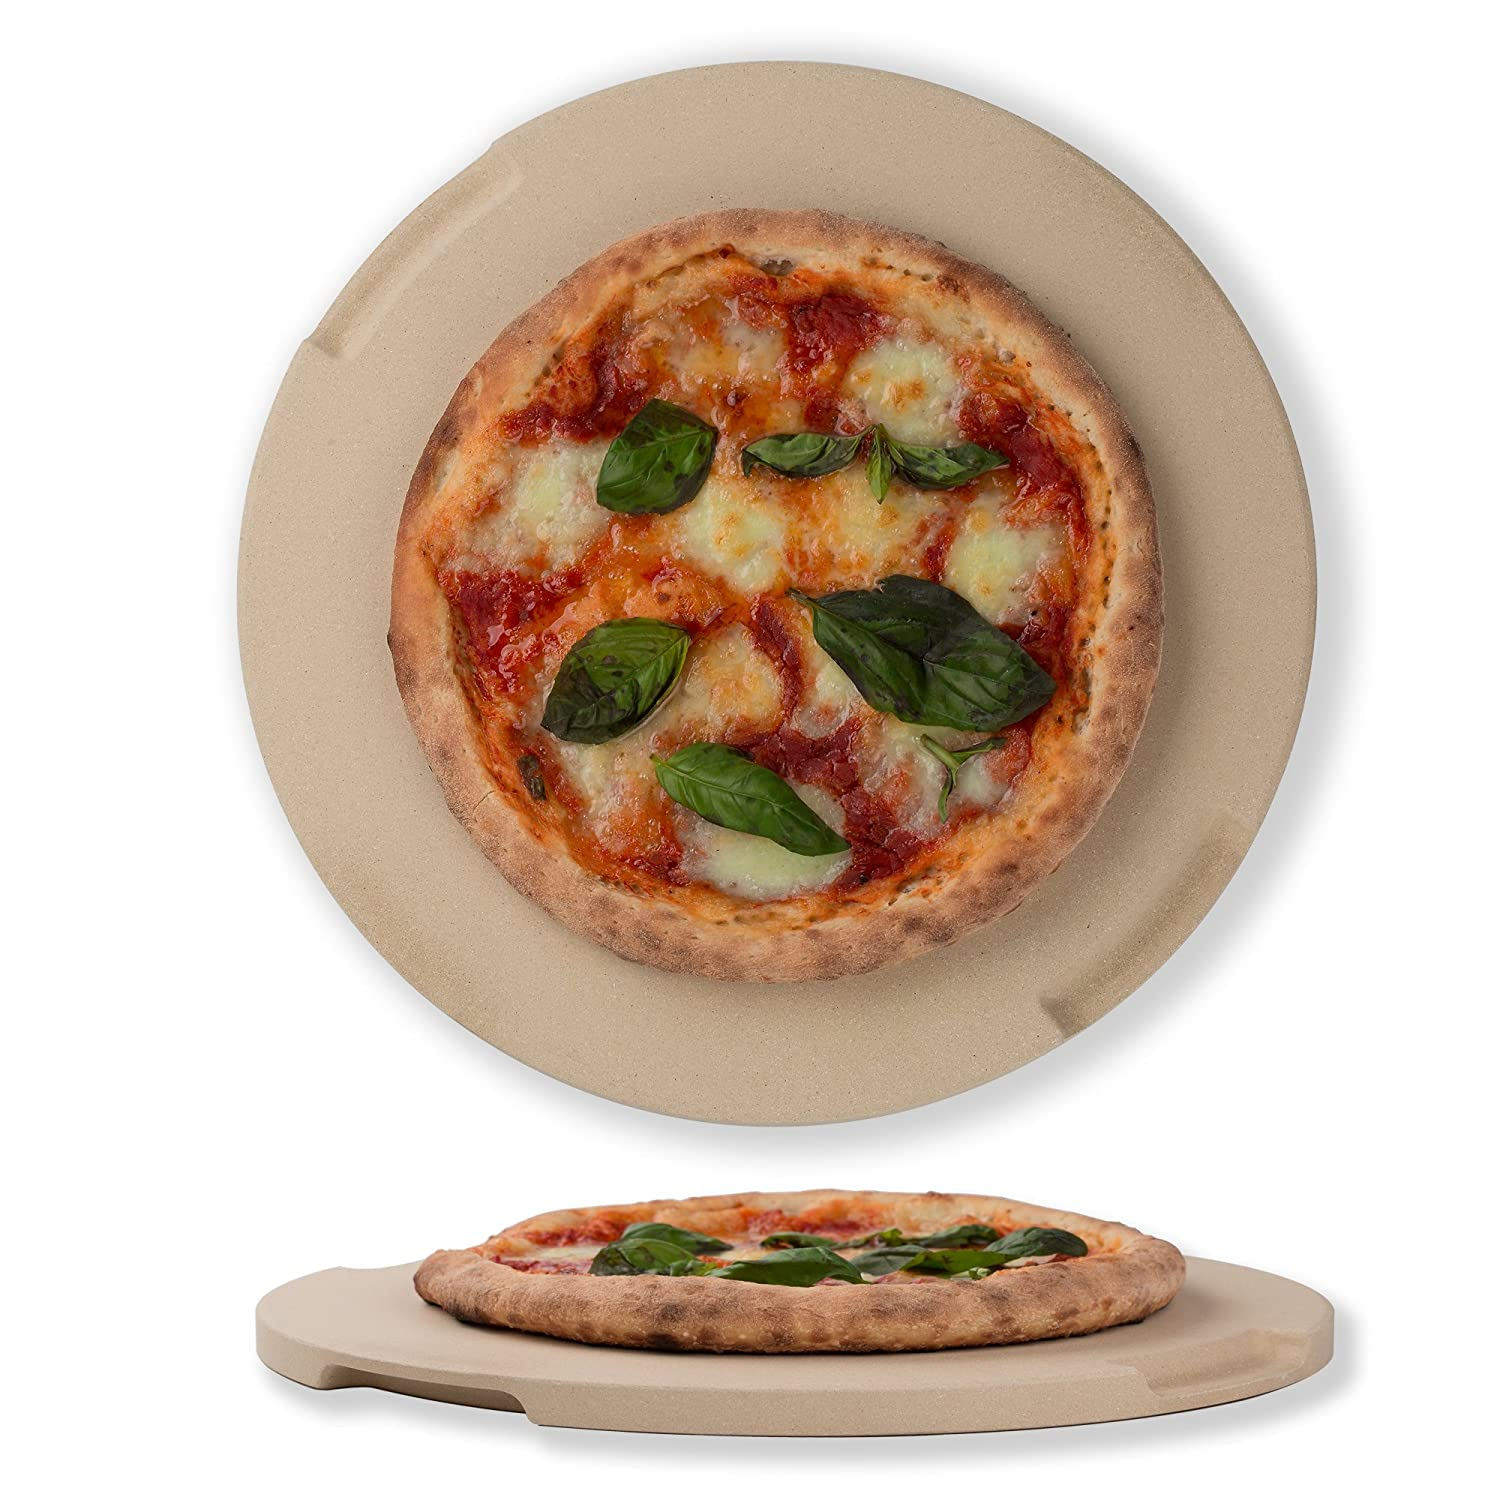 "Pizza Stone 12.6"" Round Baking & Grilling Stone, Perfect for Oven, BBQ and Grill. Innovative Double - faced Built - in 4 Handles Design"